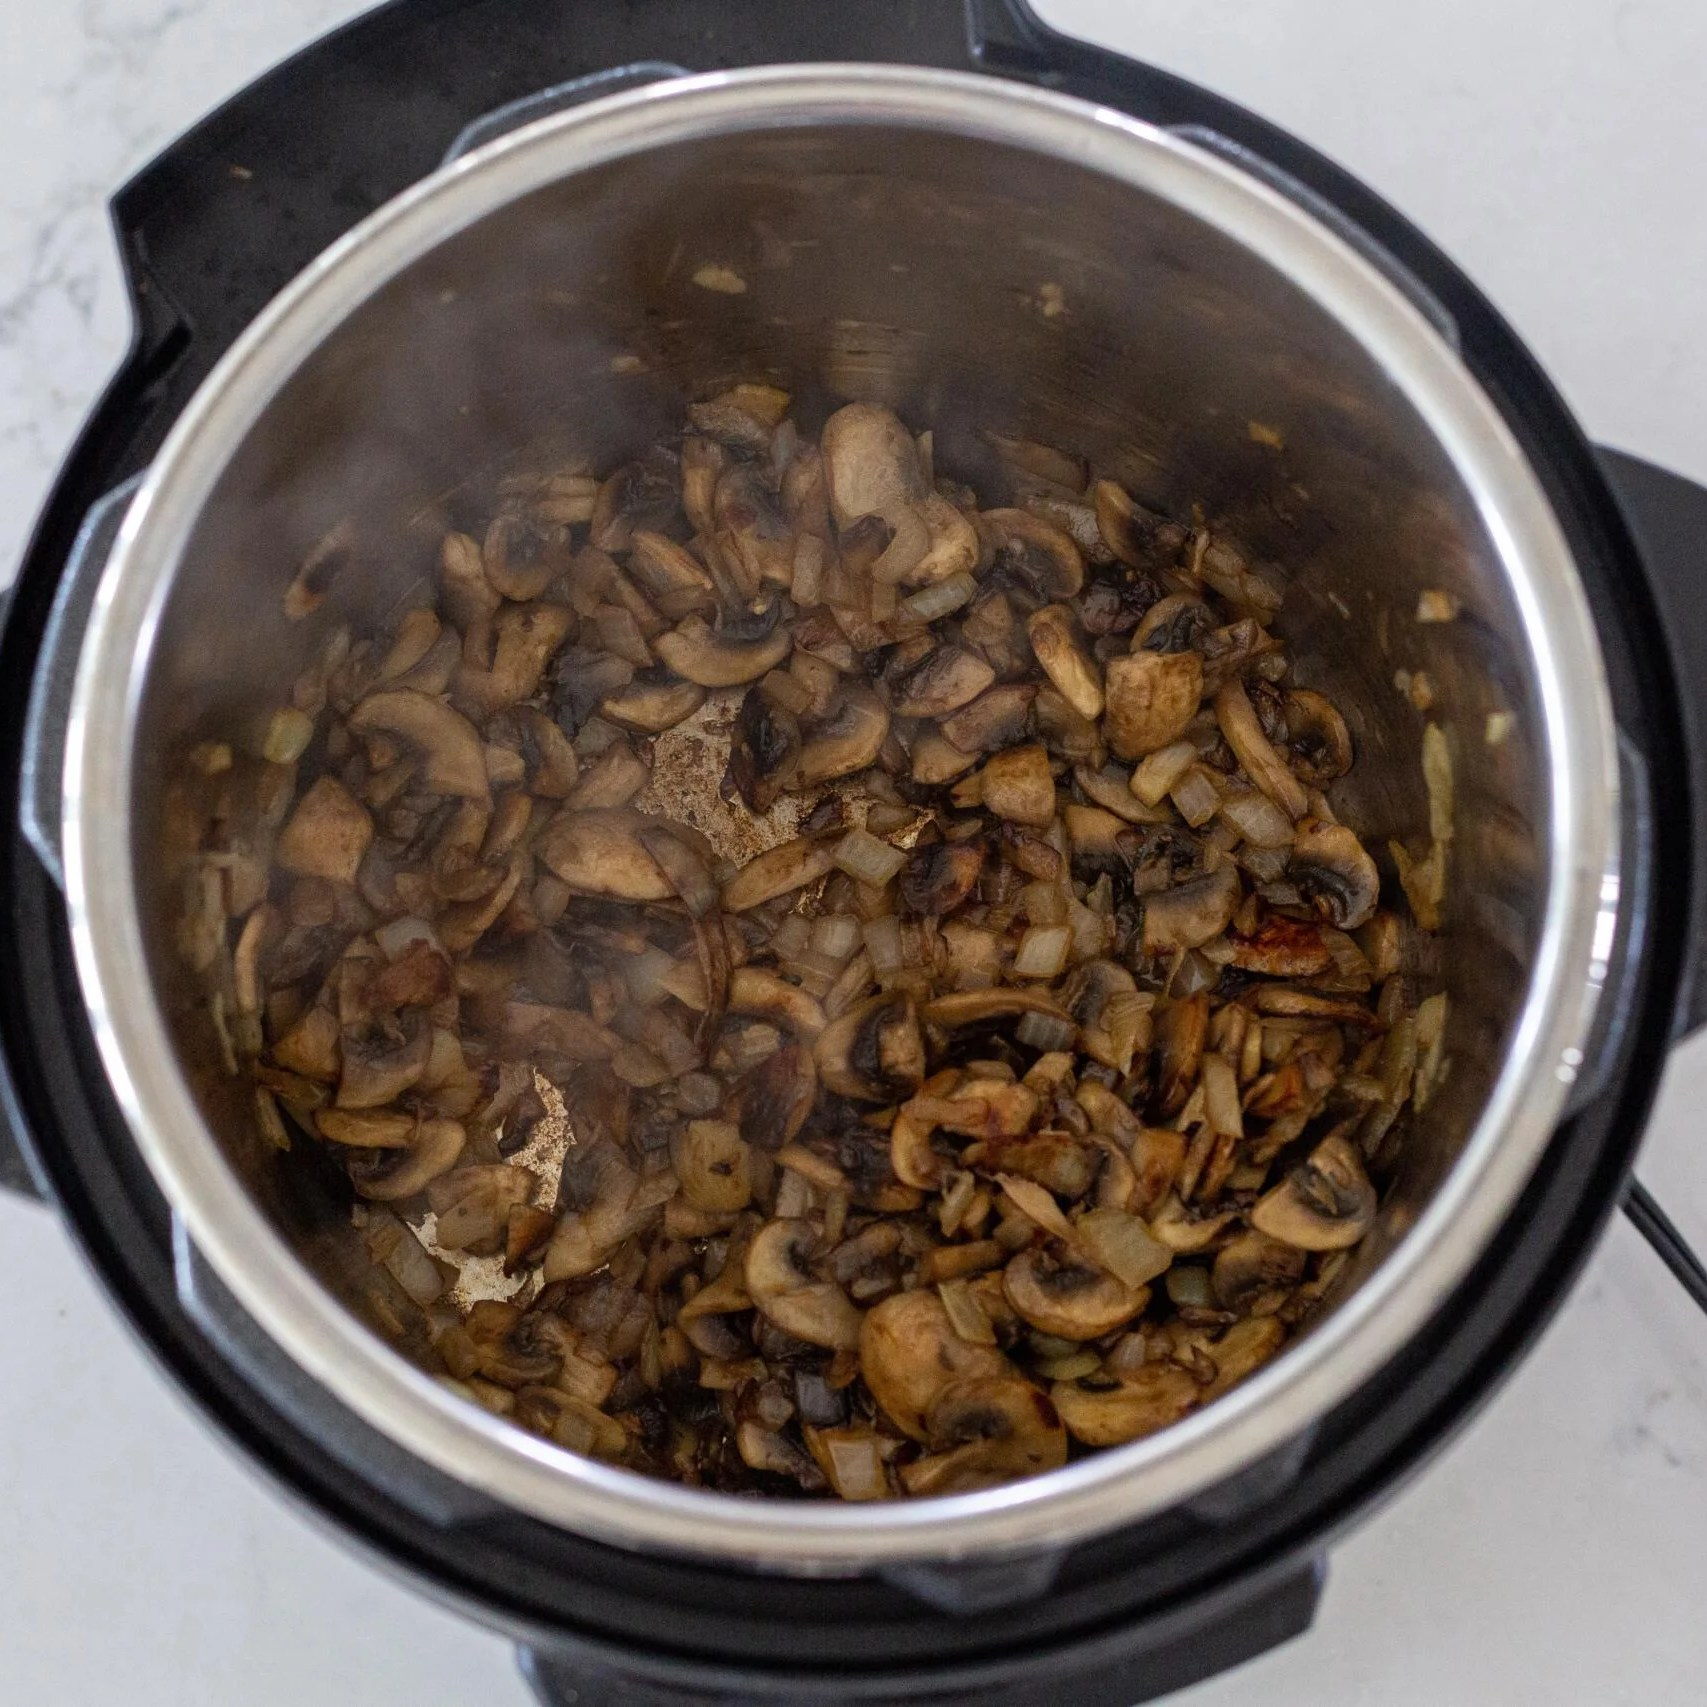 Mushrooms cooking in an inst